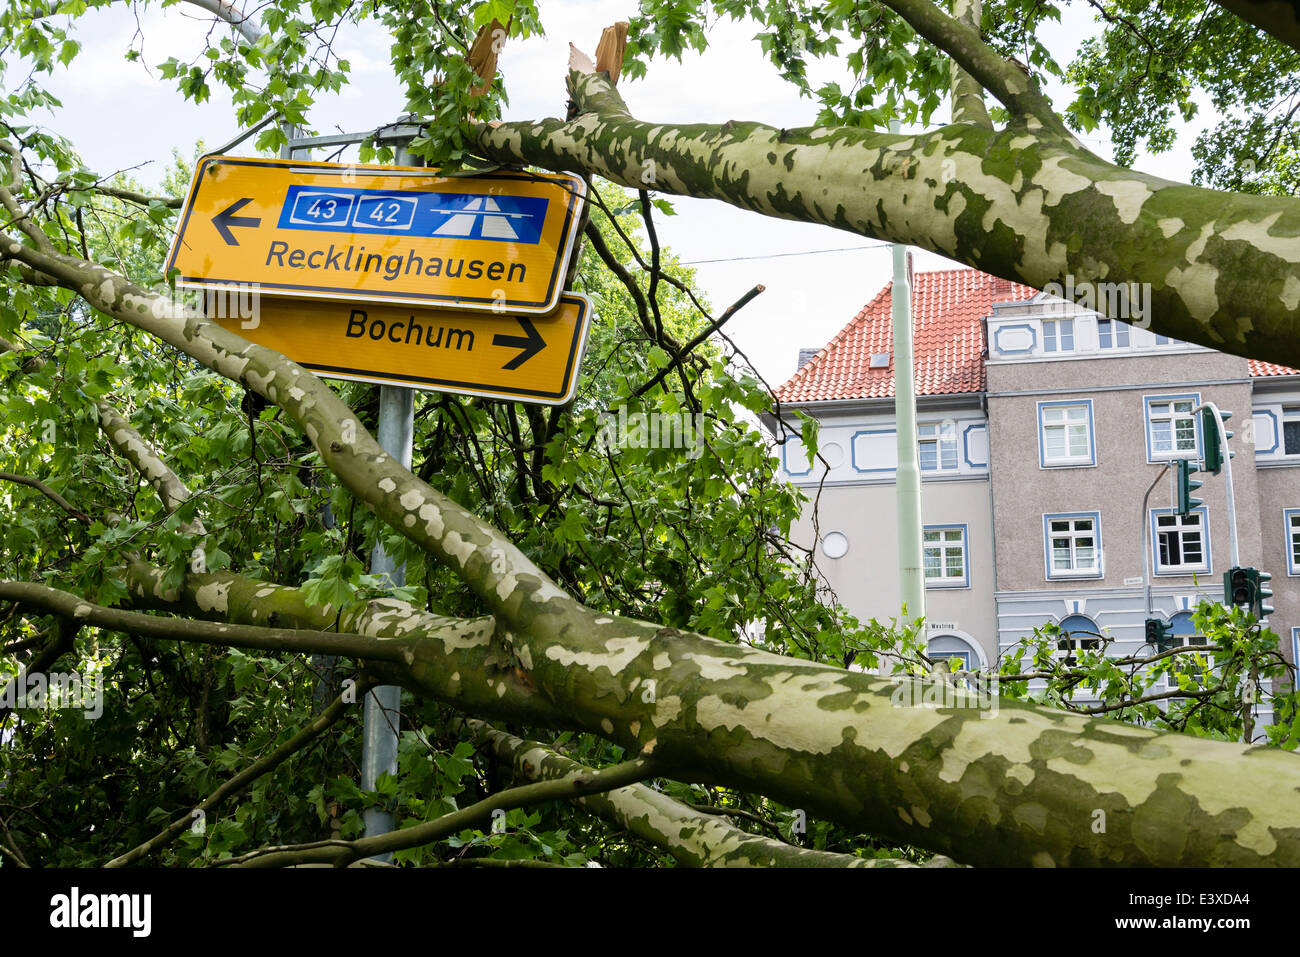 A fallen tree lay on a traffic sign in Herne, Ruhr area, Western Germany after the severe storm front Ela Stock Photo